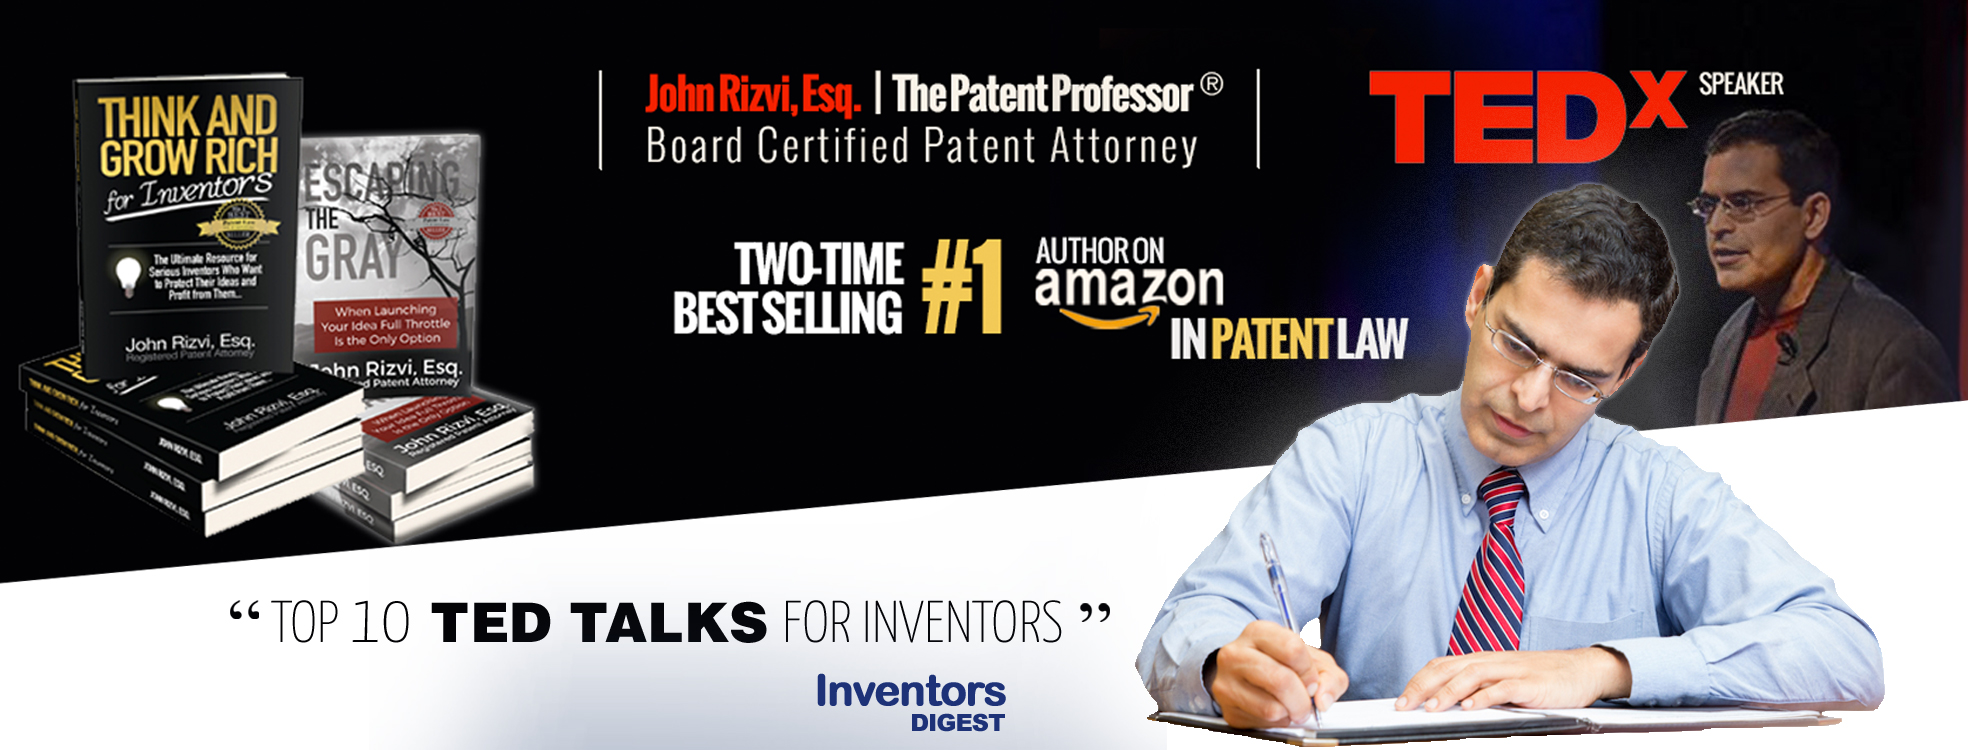 The Patent Professor reviews | Patent Law at 11575 Heron Bay Blvd #106a - Coral Springs FL